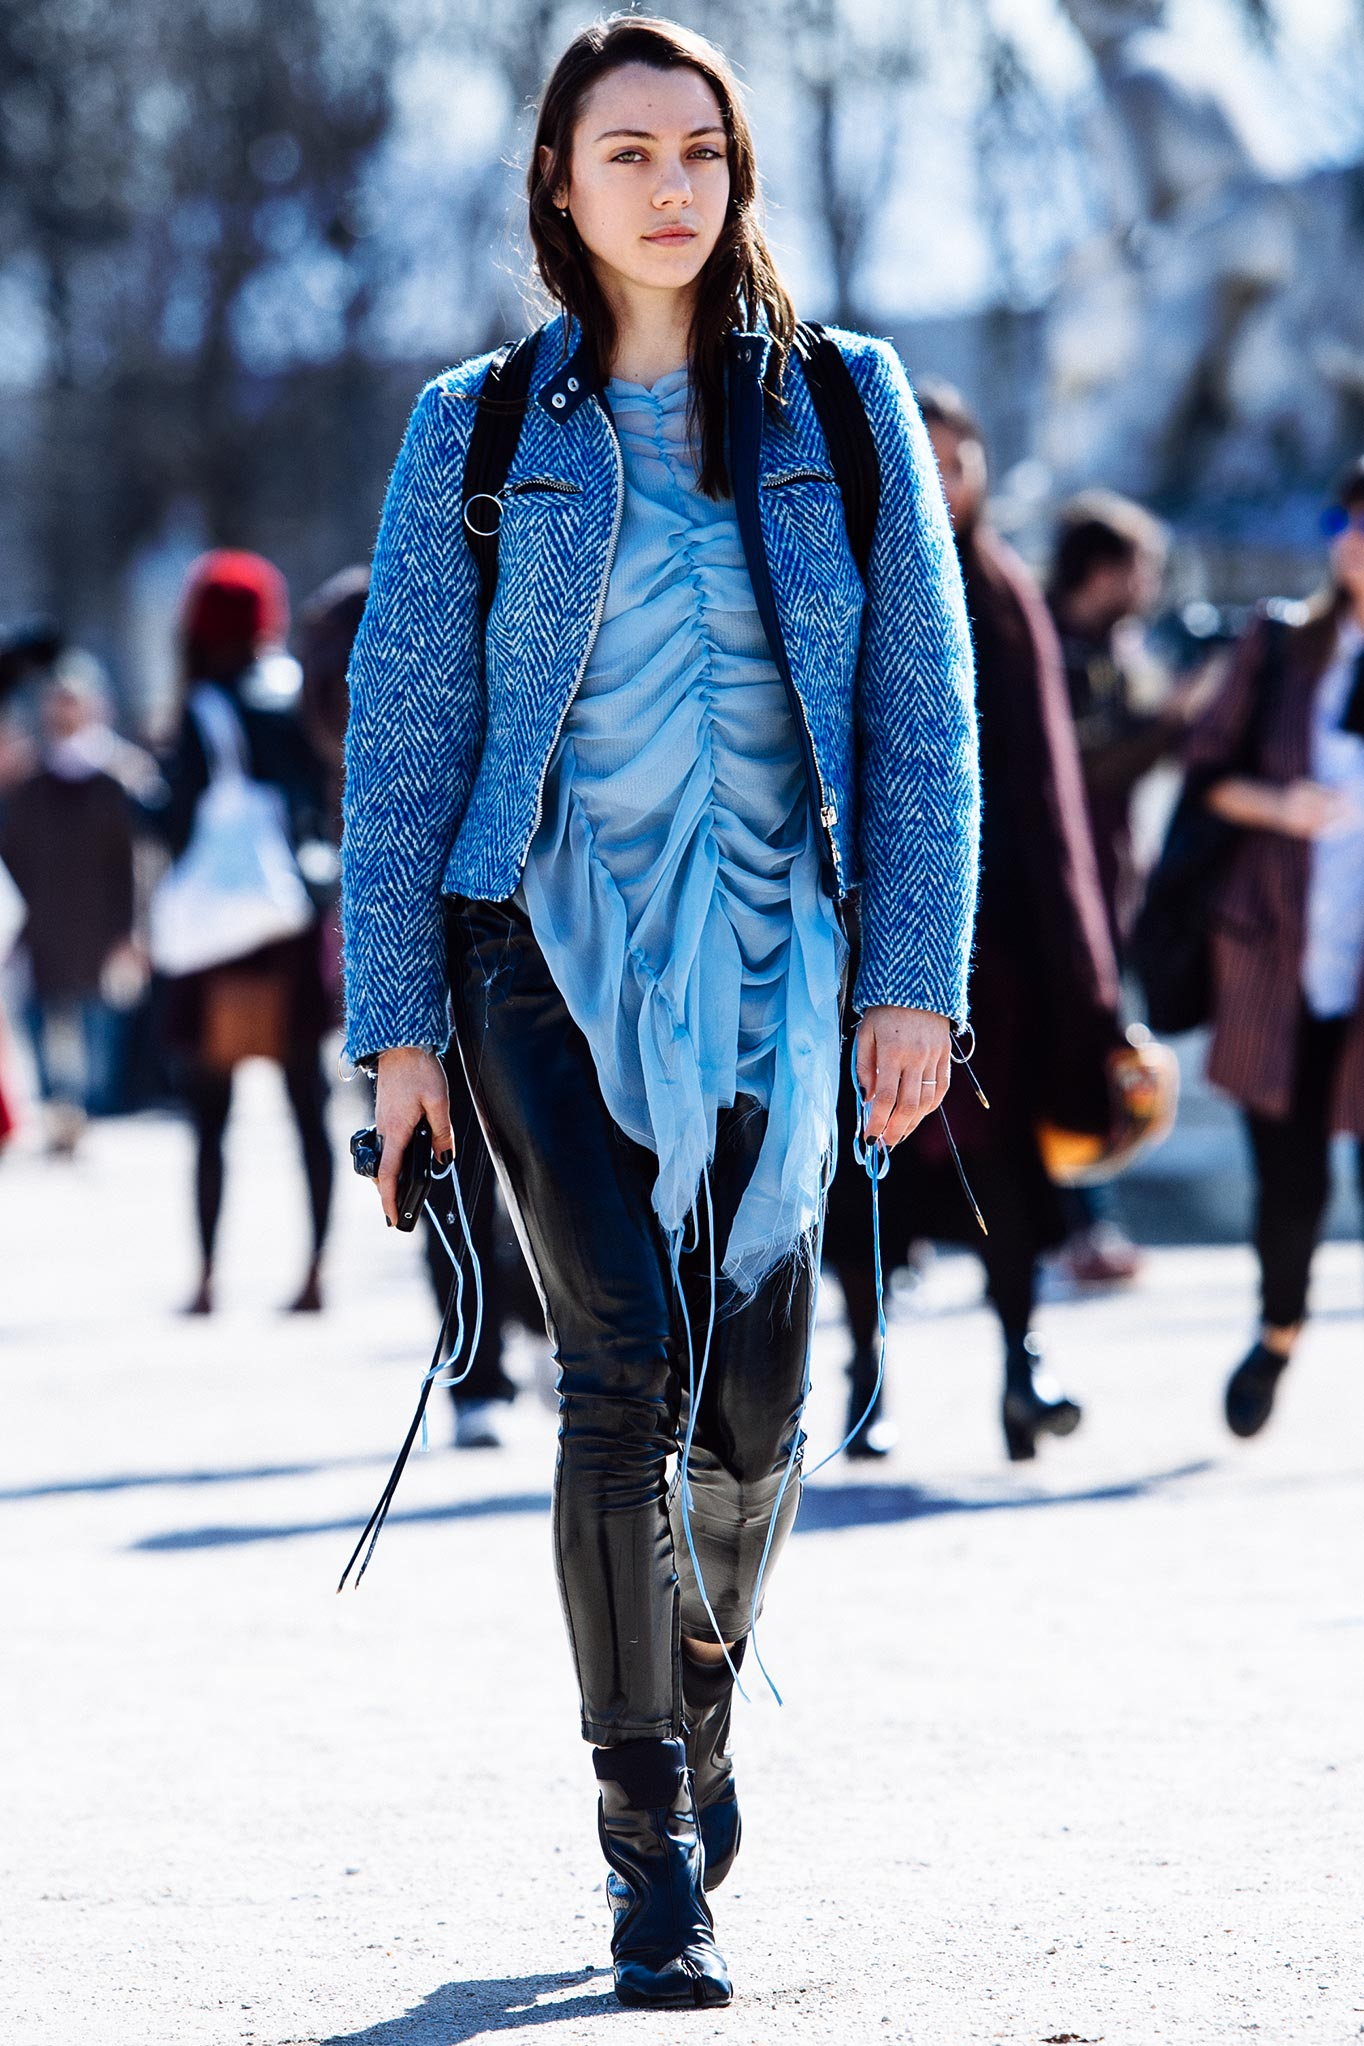 Georgia Pendlebury at Paris Fashion Week Fall/Winter 2015